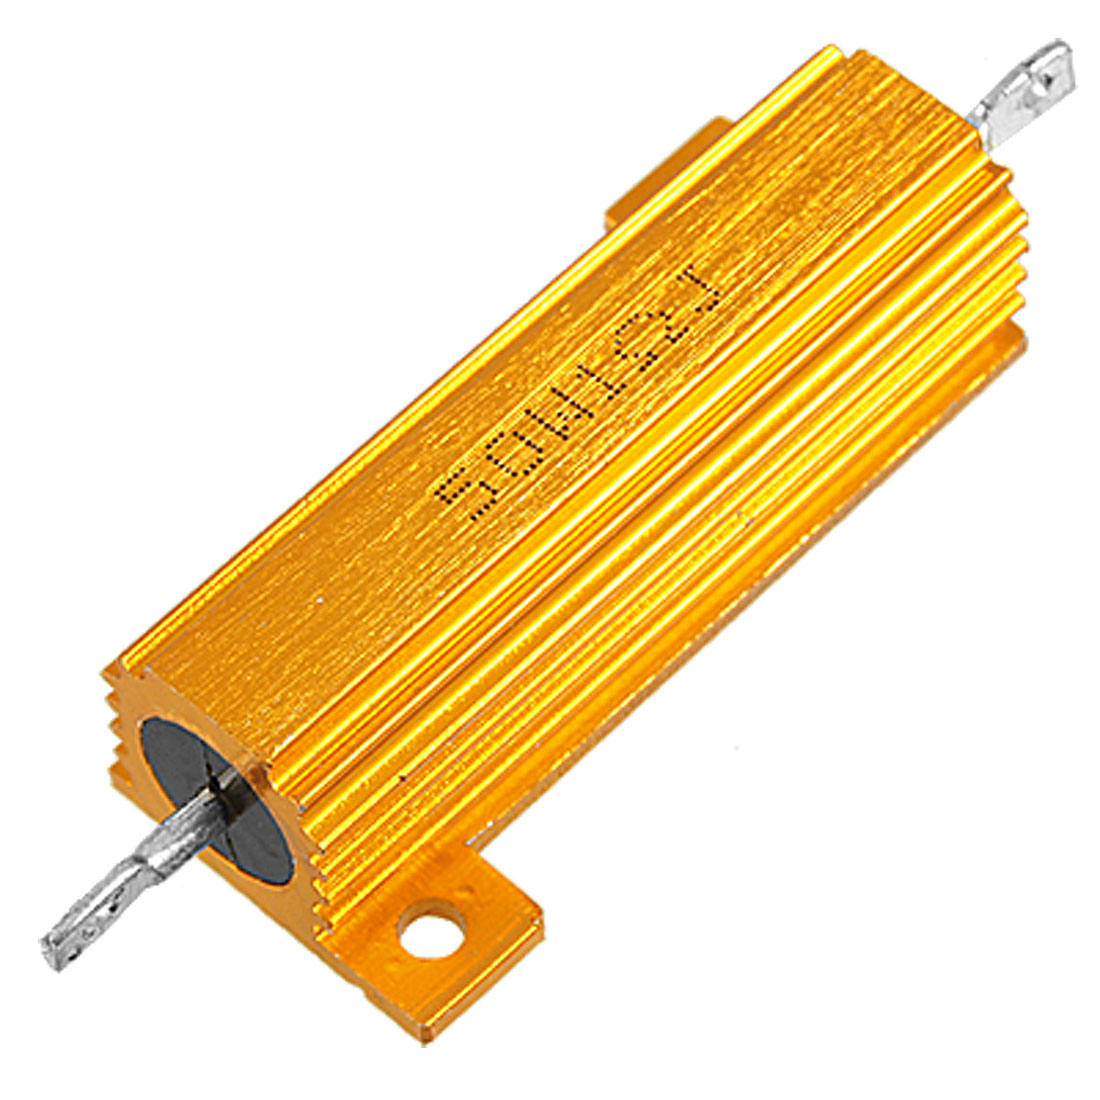 50W 1 Ohm 5% Chassis Mount Aluminium Clad Resistor Gold Tone